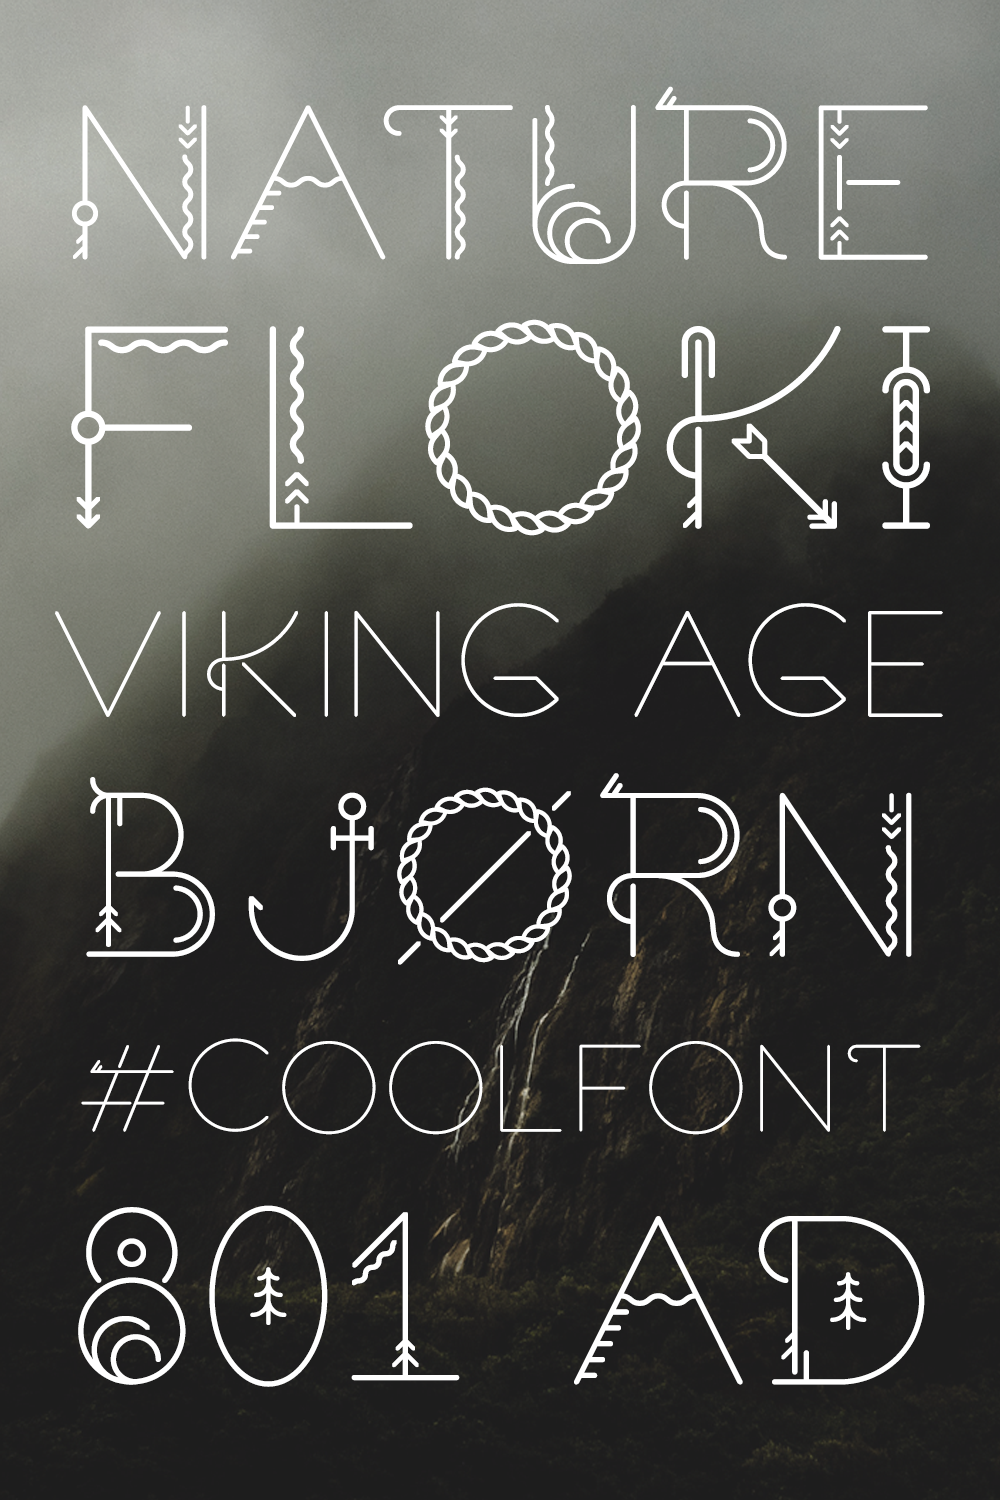 Sacred North Display Font (With images) Old fonts